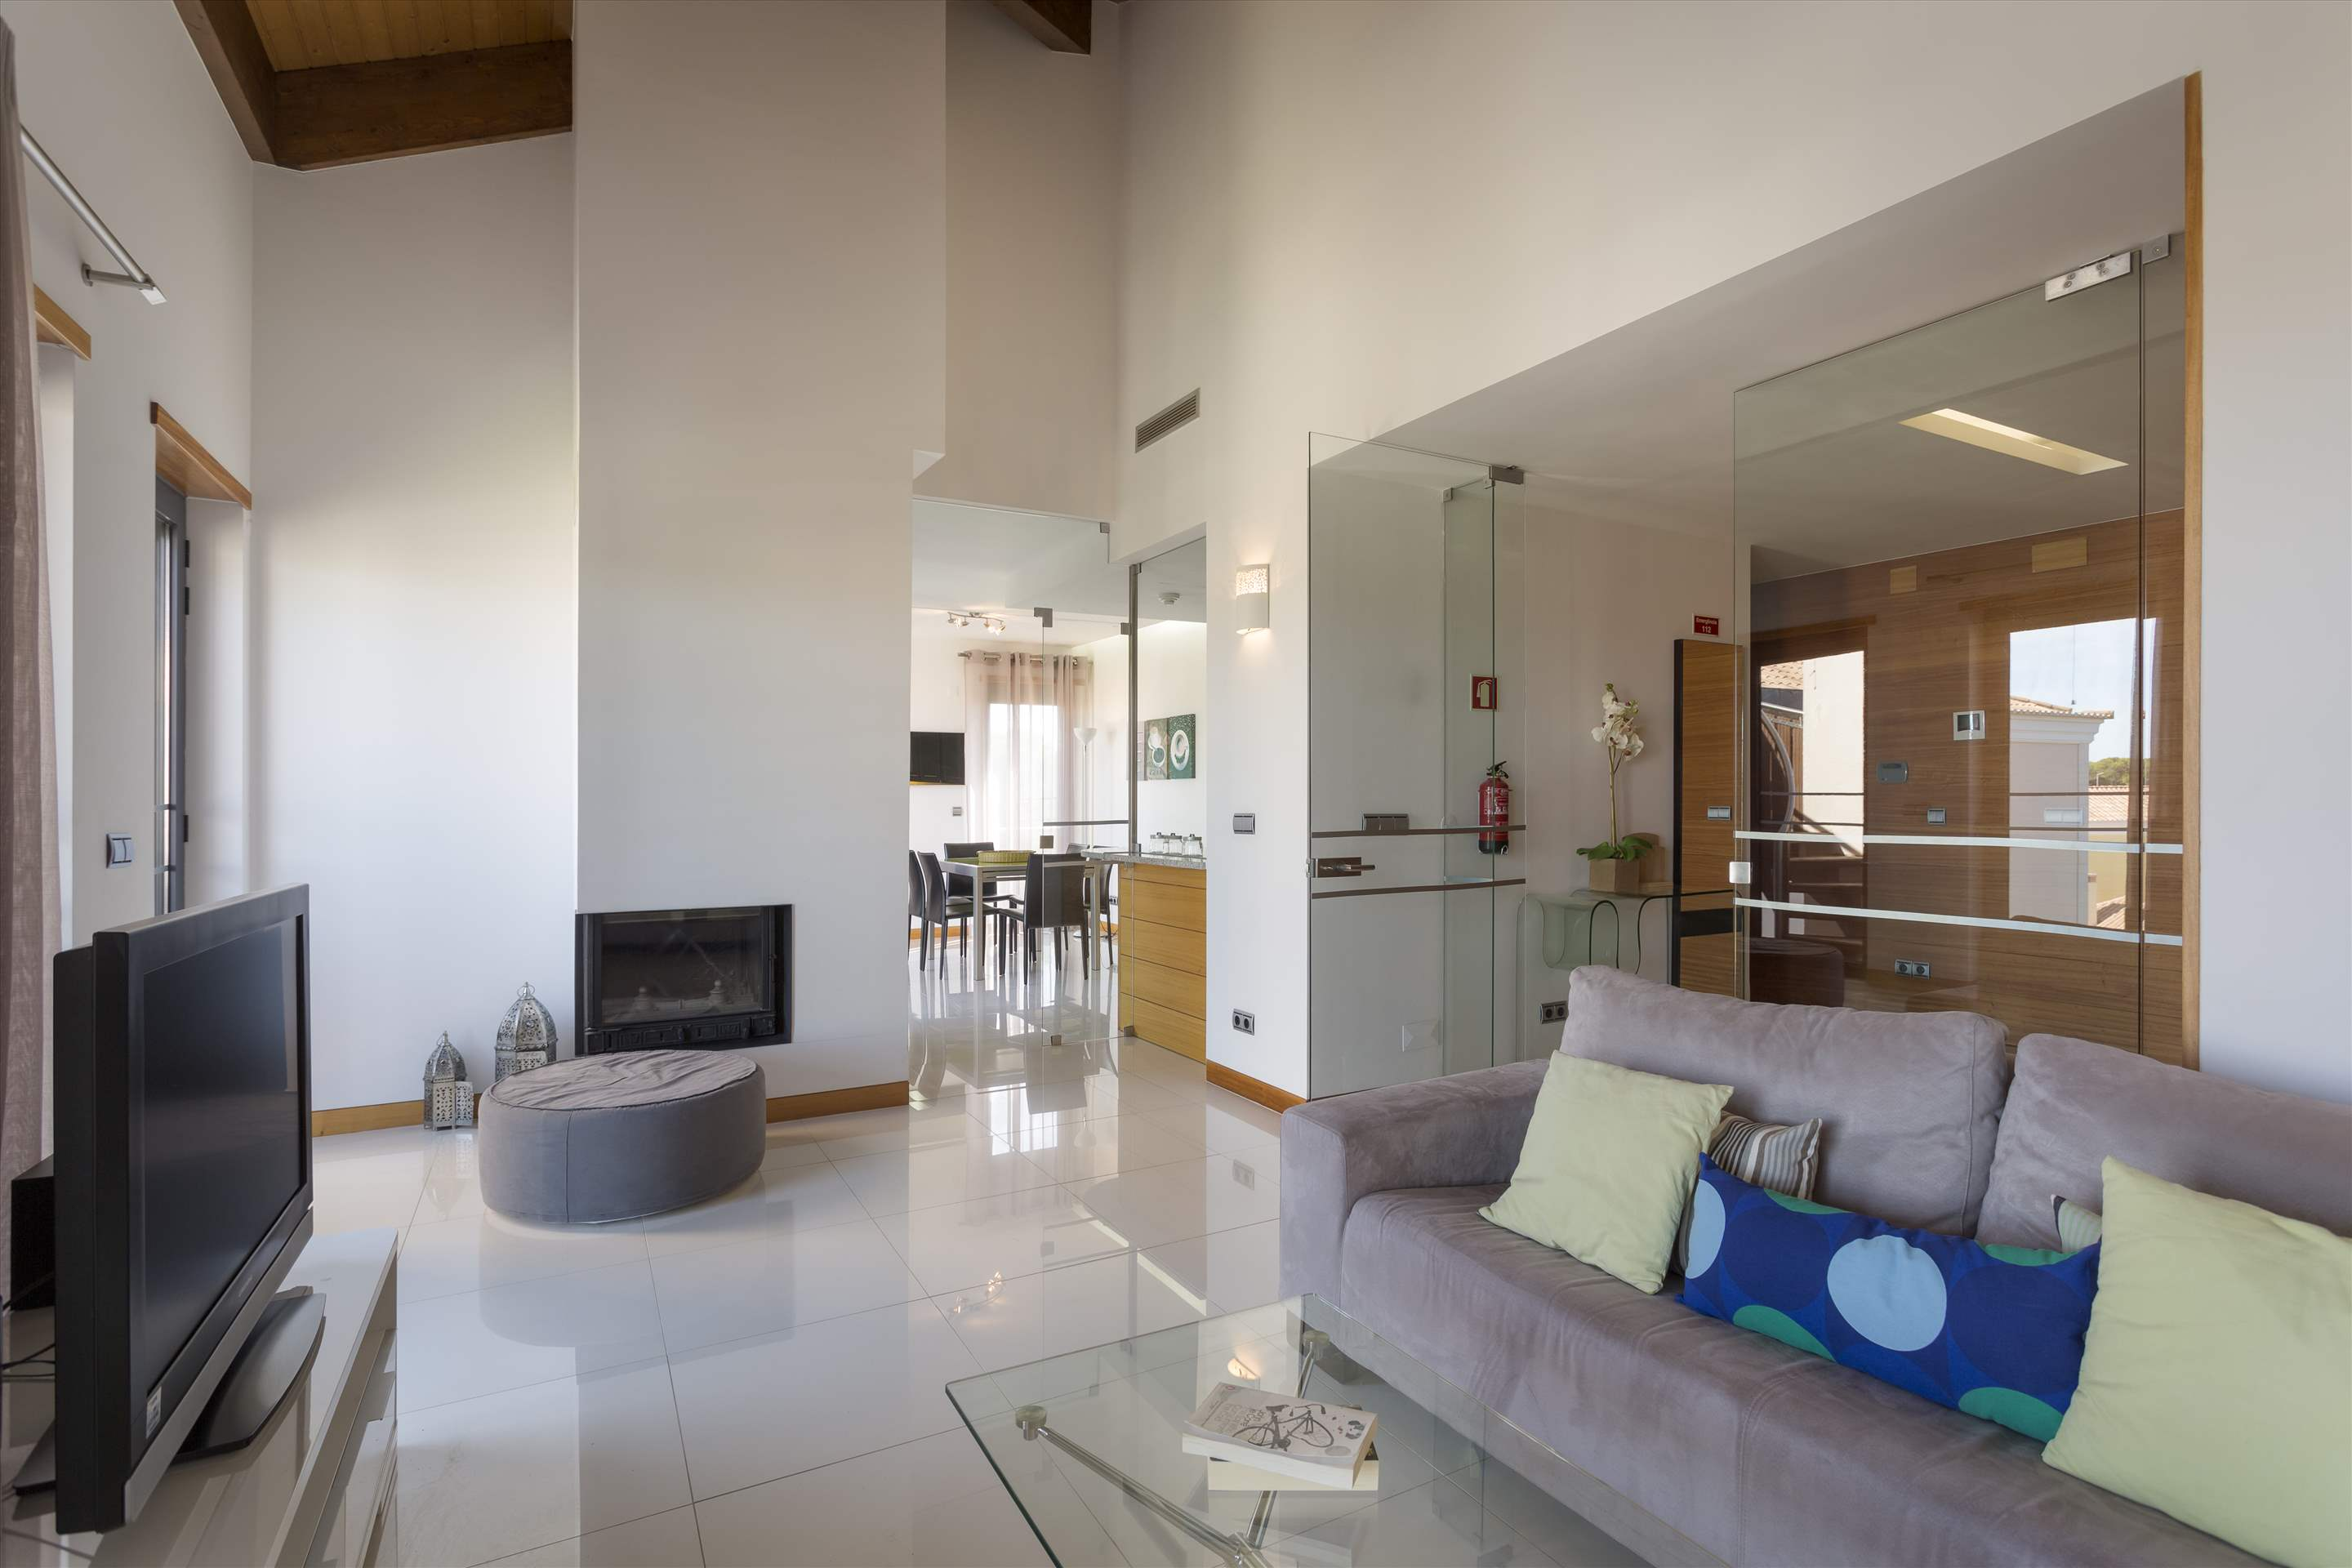 Apartment Rosie, 2 bedroom apartment in Vale do Lobo, Algarve Photo #5